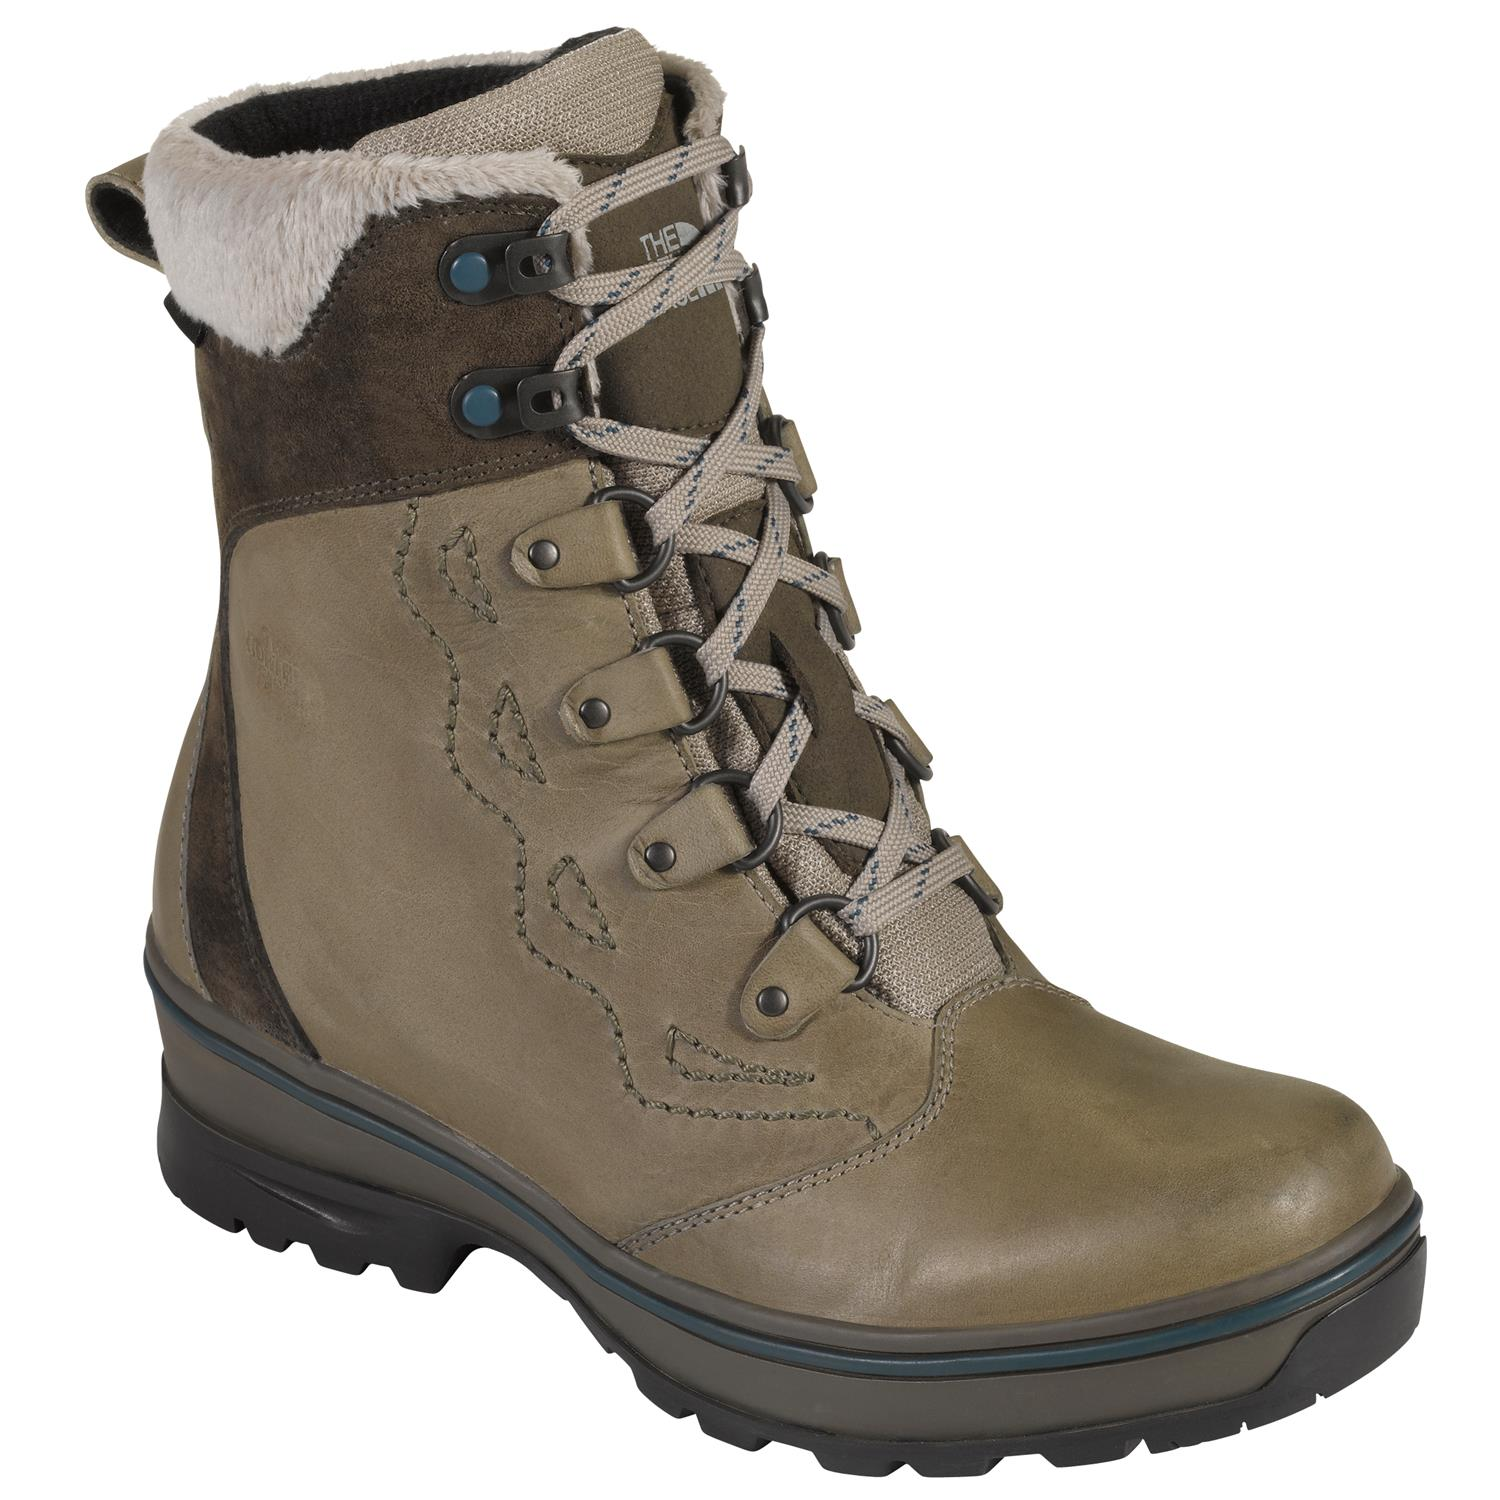 Amazing Bobwards Com Footwear Womens Footwear Insulated And Winter Boots Women